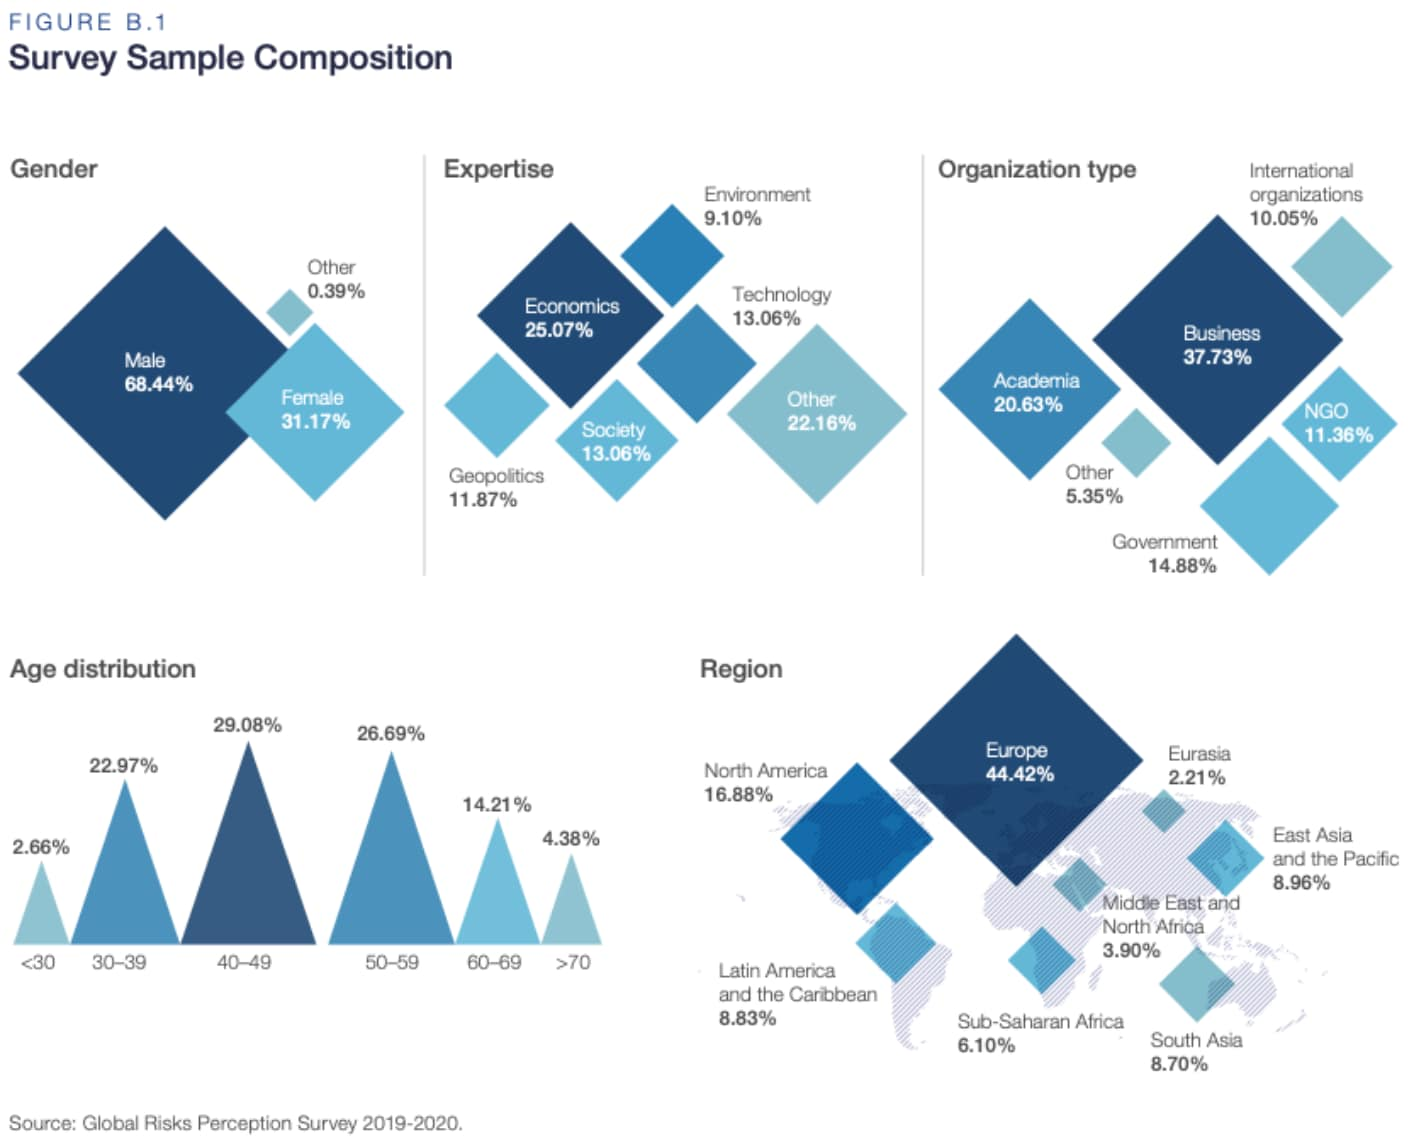 WEF Survey Sample Composition